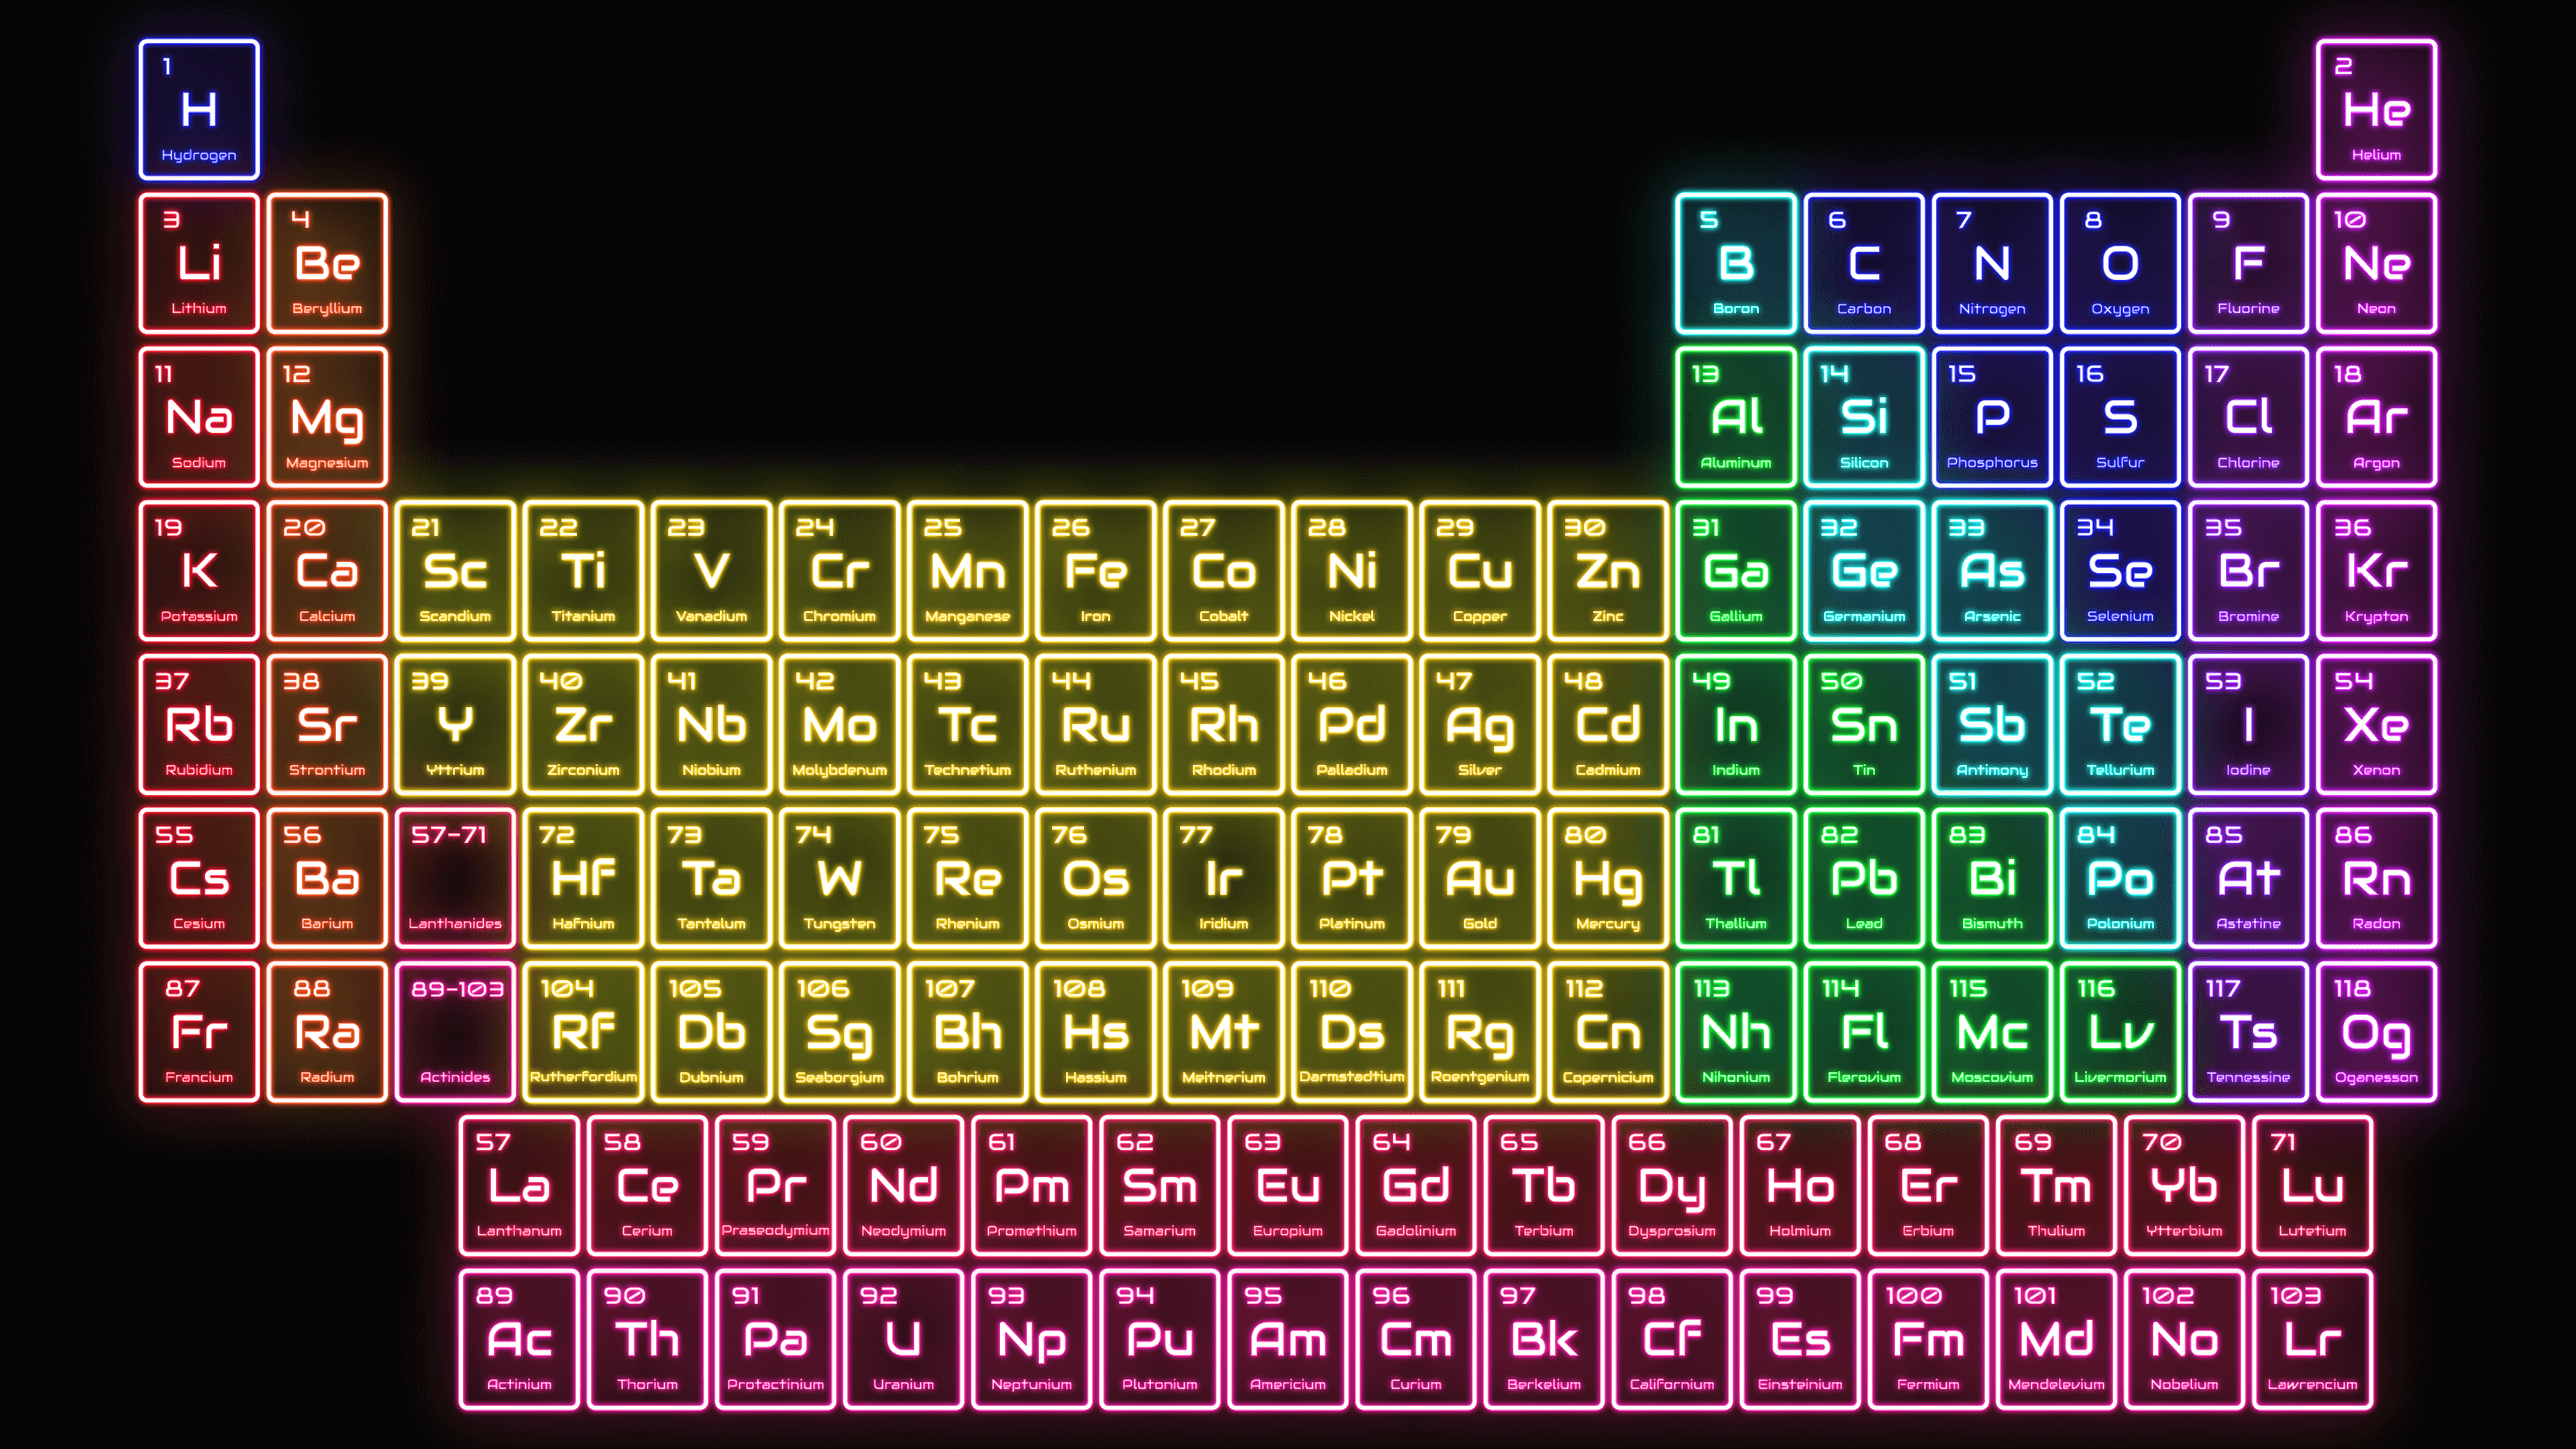 This colorful neon lights periodic table wallpaper shines